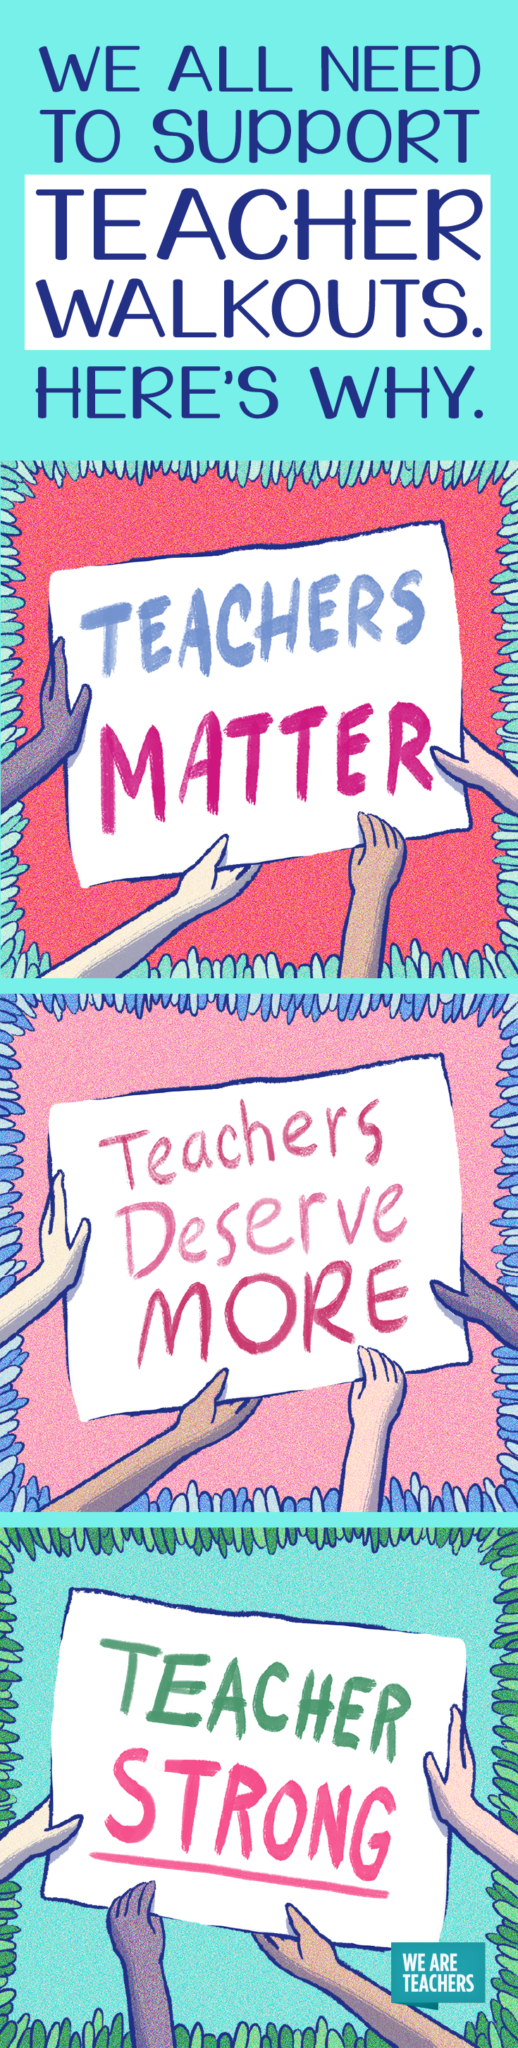 We all need to support teacher walkouts